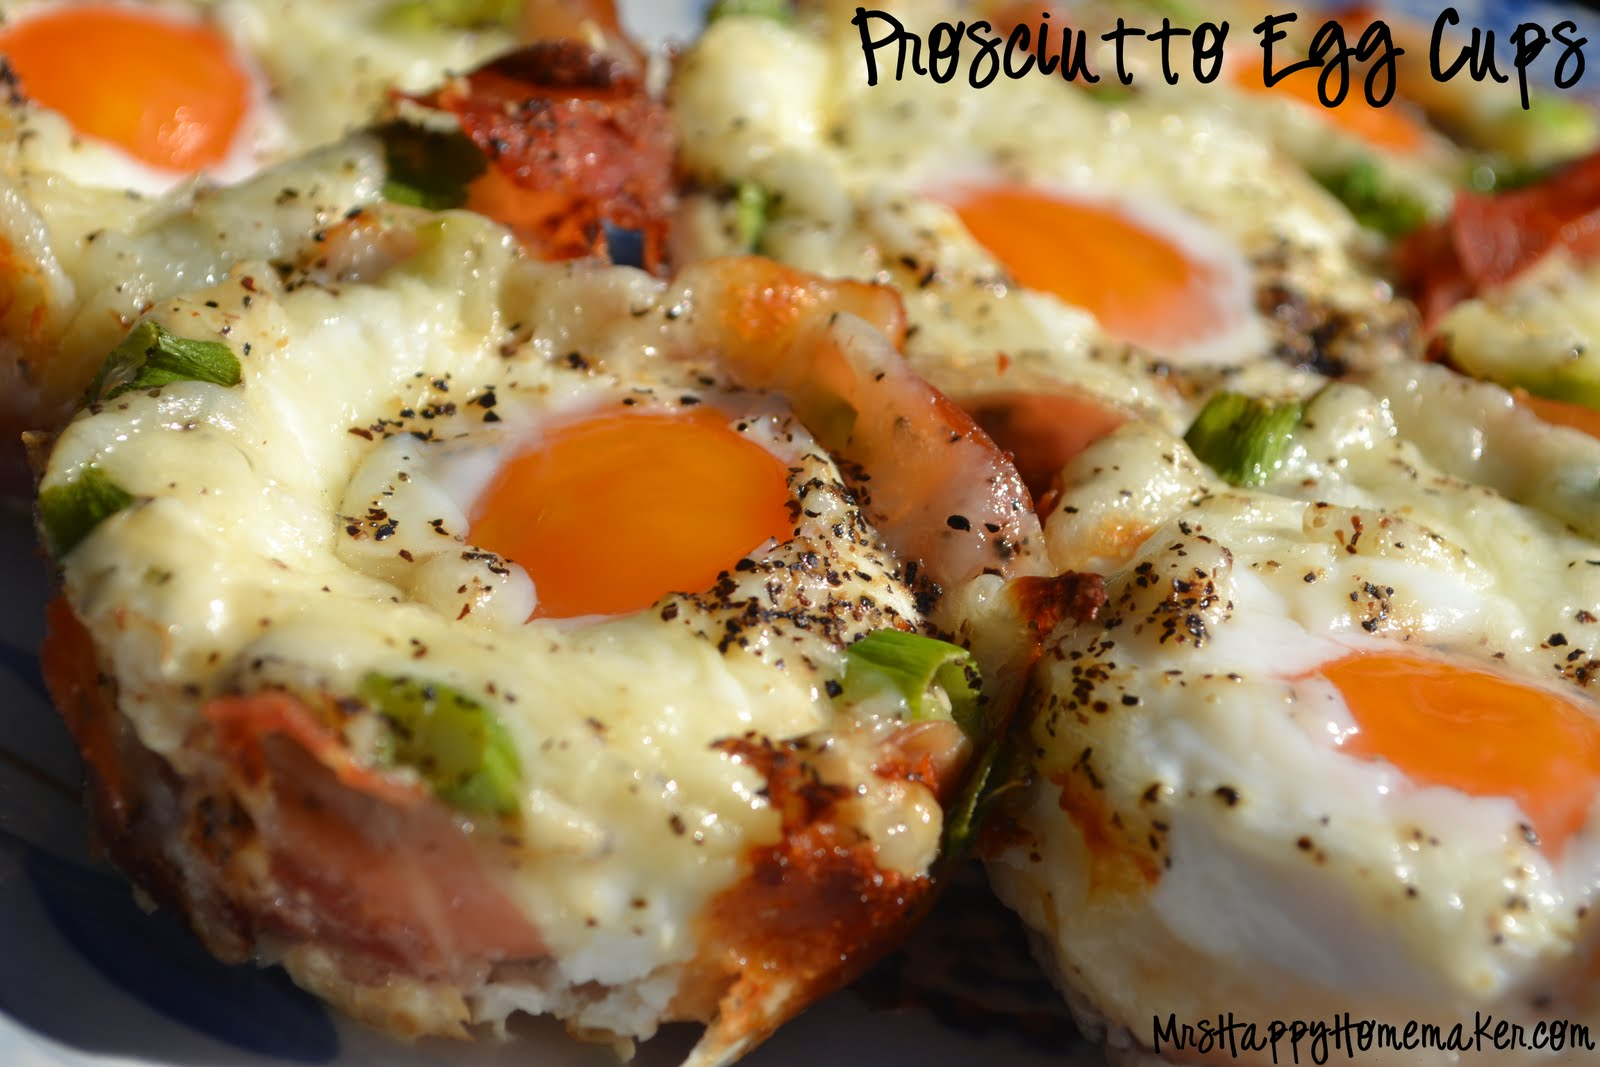 Prosciutto Egg Cups - Mrs Happy Homemaker